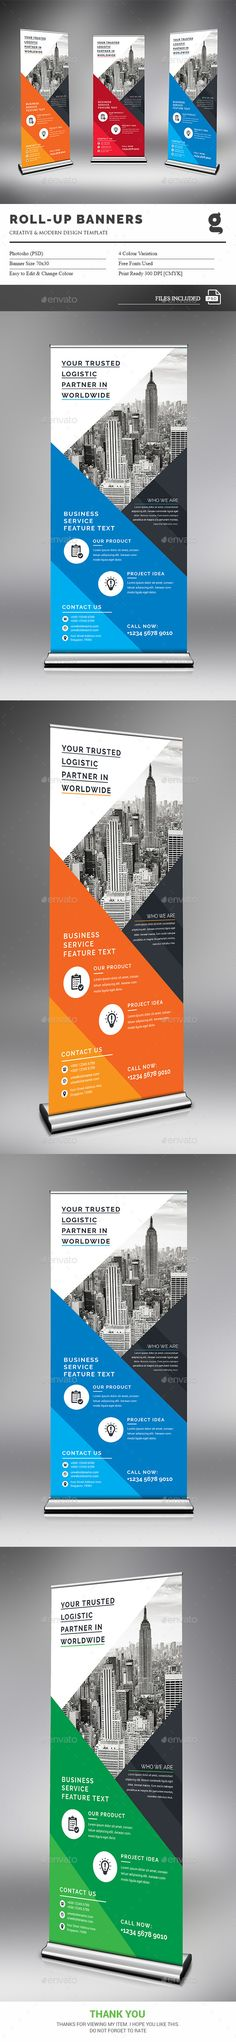 Roll-Up Banner Template PSD. Download here: https://graphicriver.net/item/rollup-banner/17377672?ref=ksioks